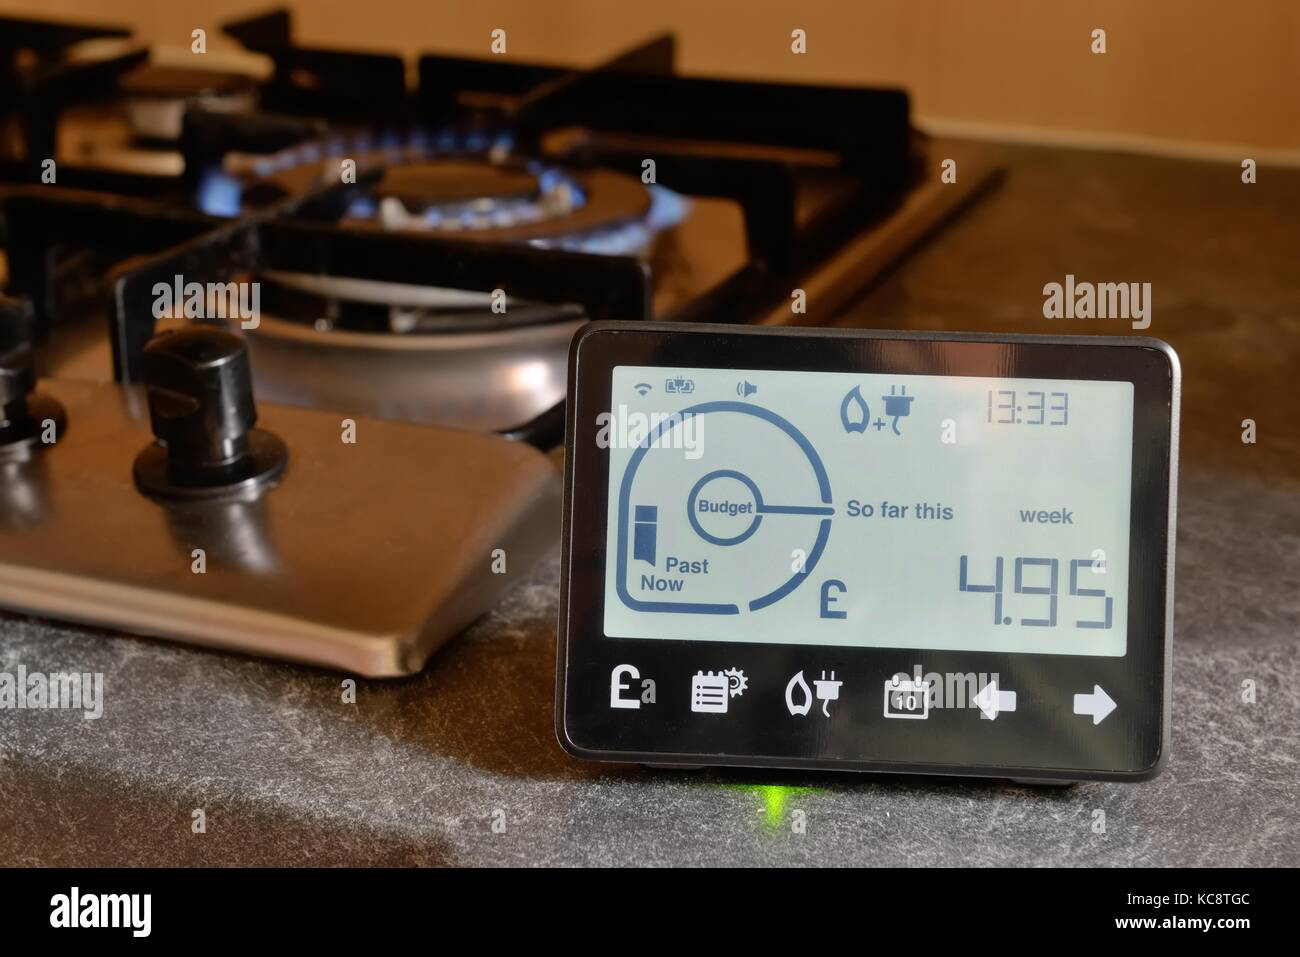 In-home display unit showing energy usage for gas and electricity in a UK house. - Stock Image